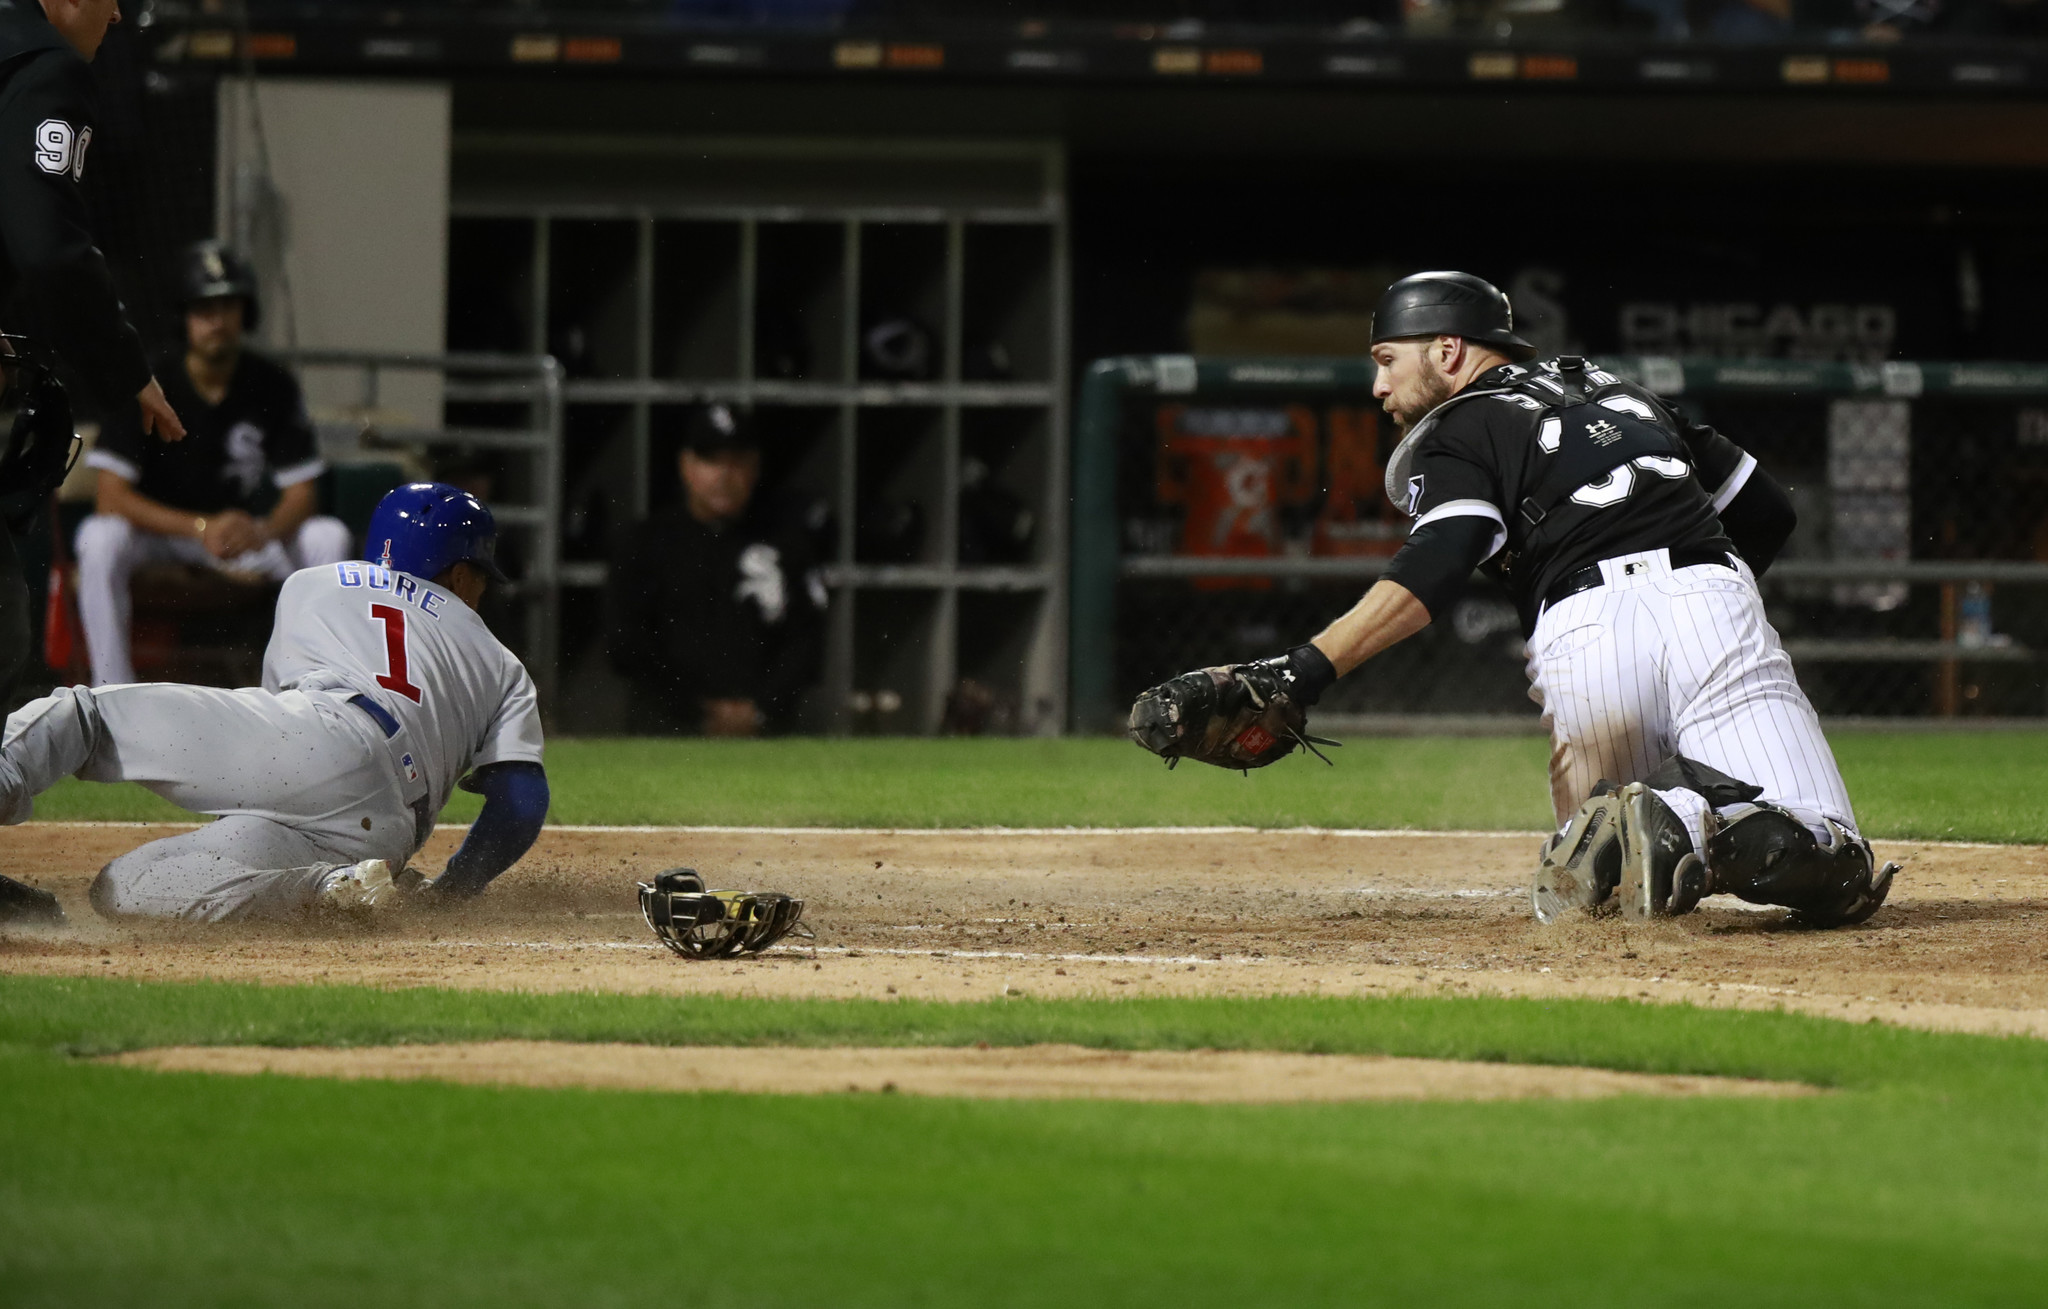 7 things to know about the Cubs-Sox City Series, including whatever happened to the BP Cup and WGN-TV's swan song